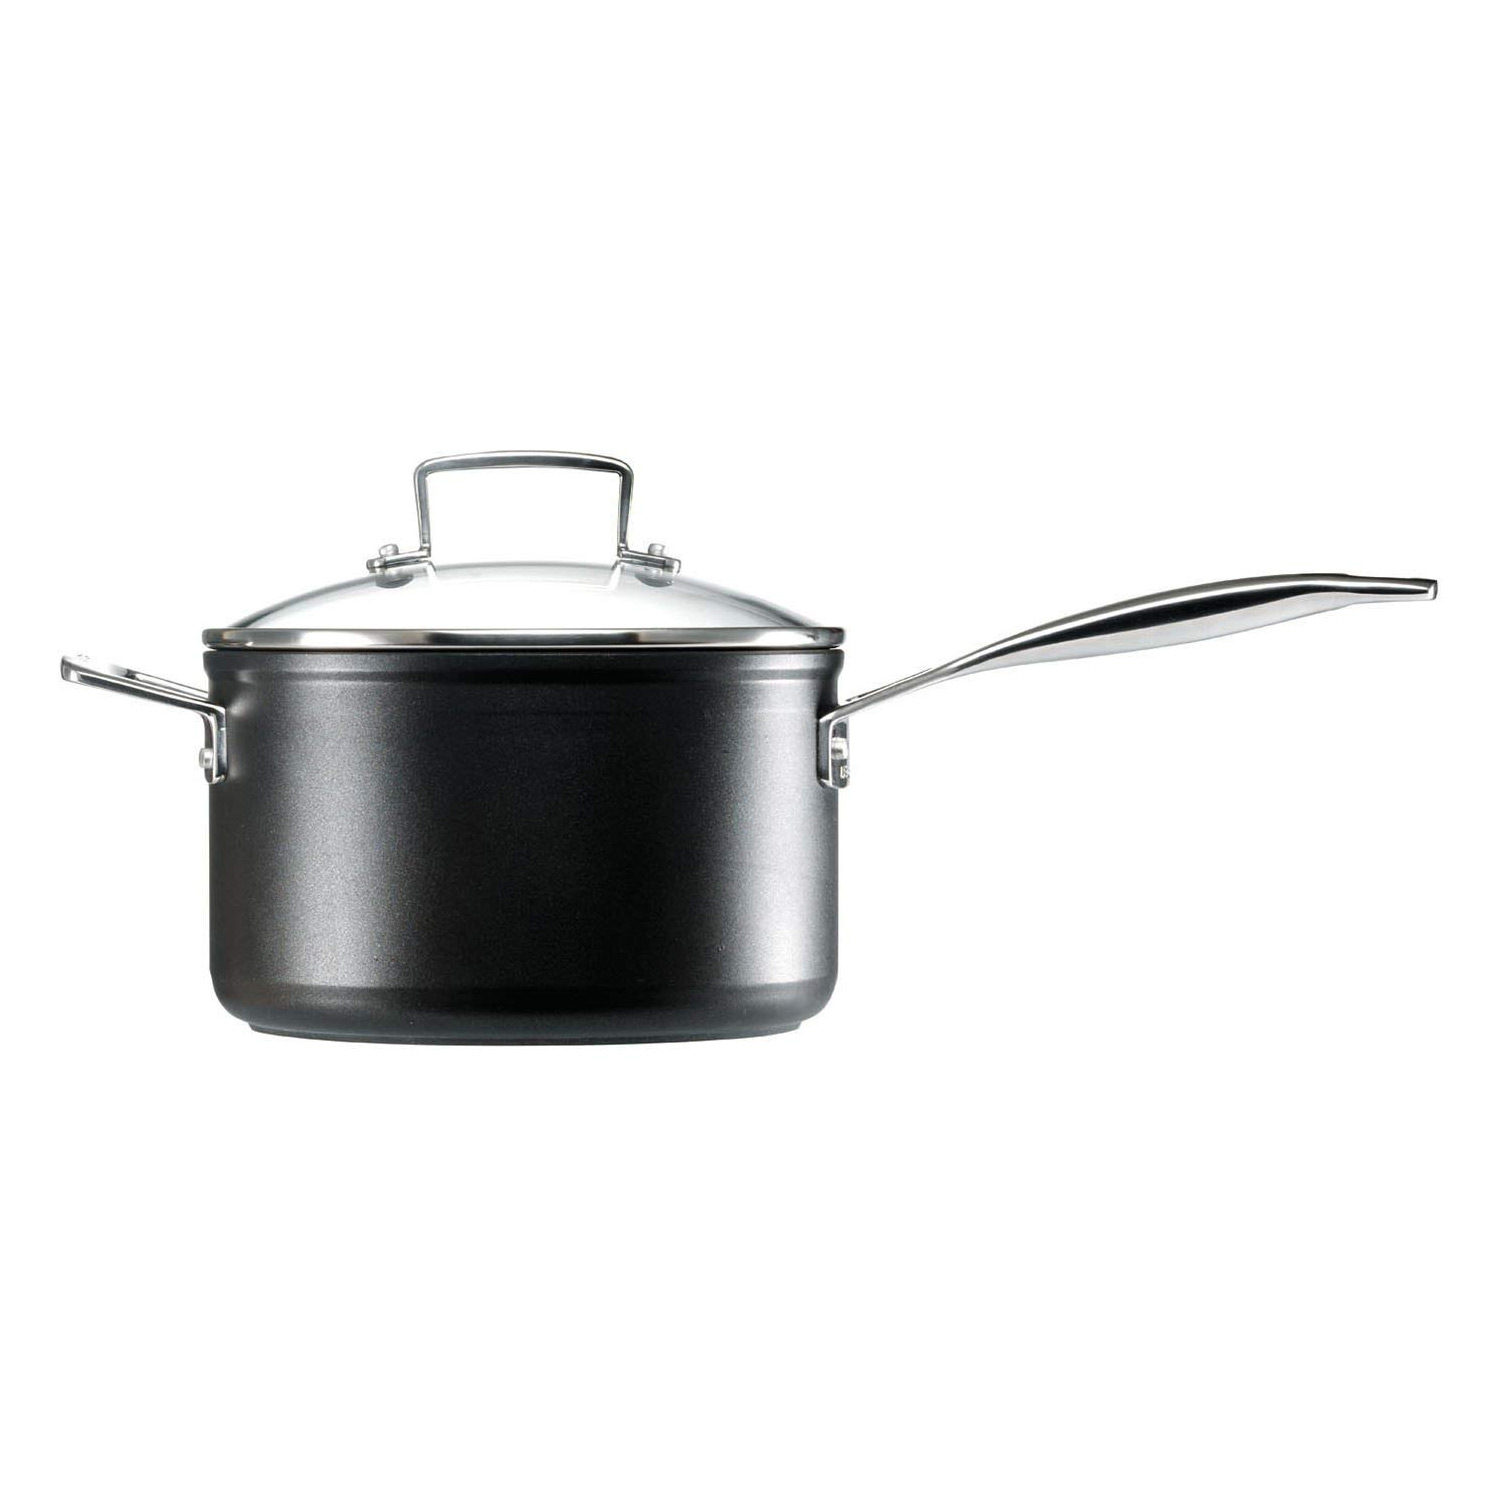 le creuset toughened non stick 3 saucepan set in black. Black Bedroom Furniture Sets. Home Design Ideas